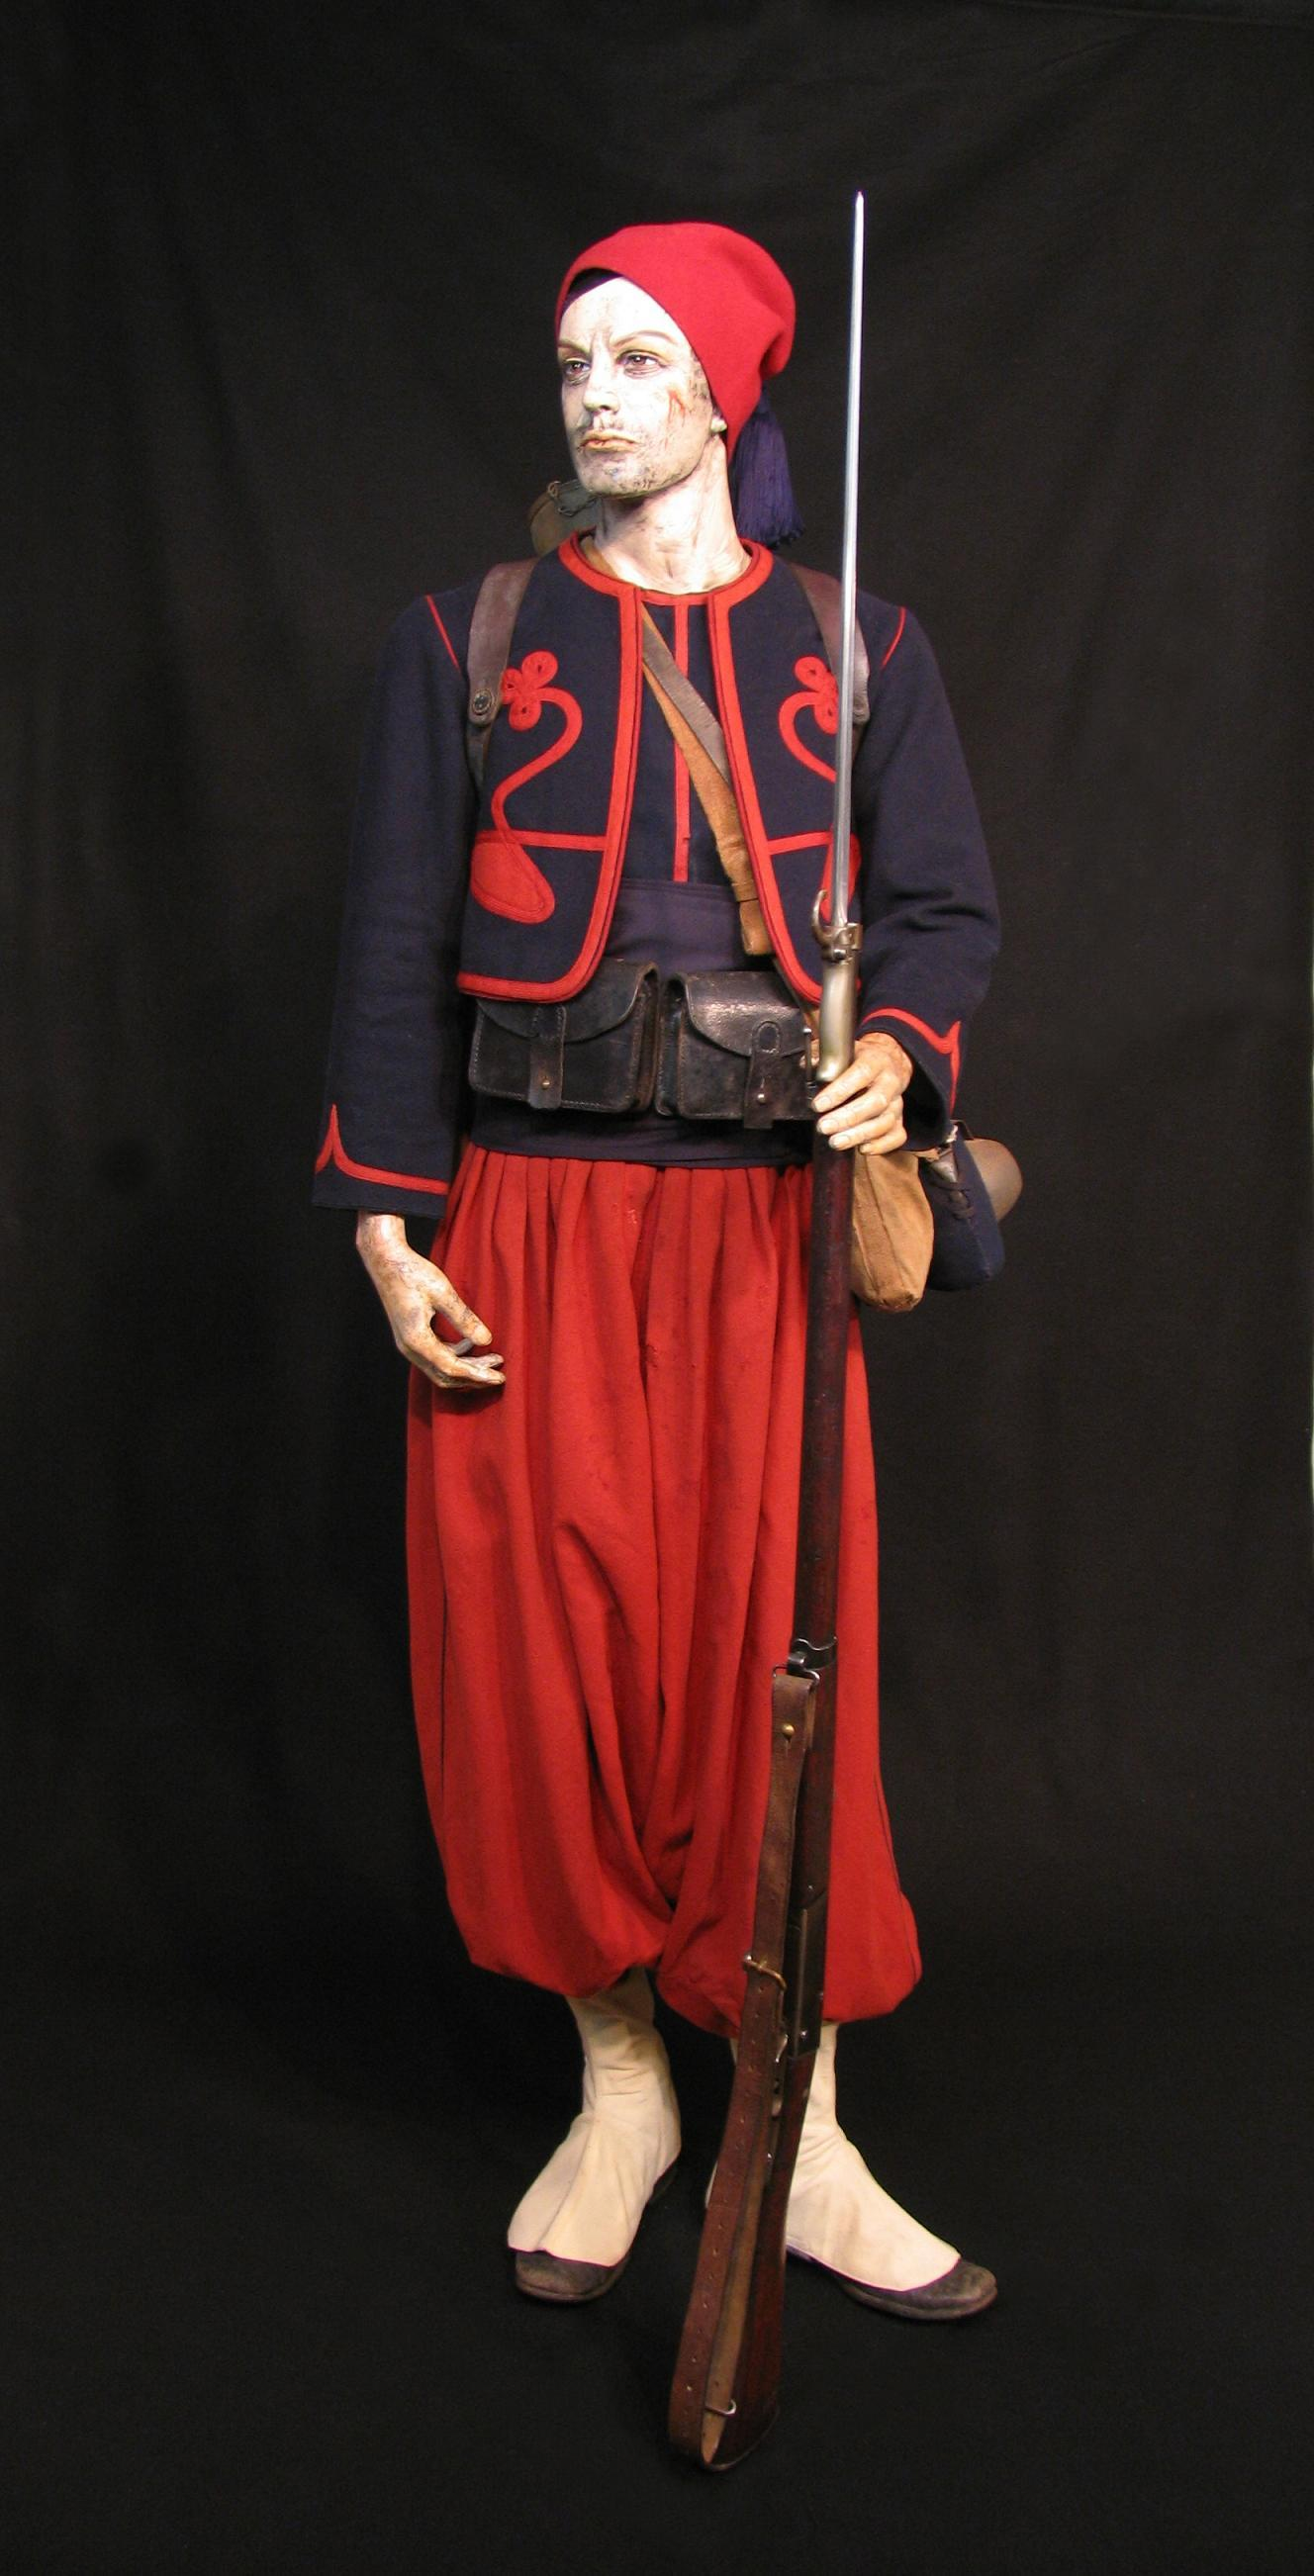 French 1st Zouave&.JPG